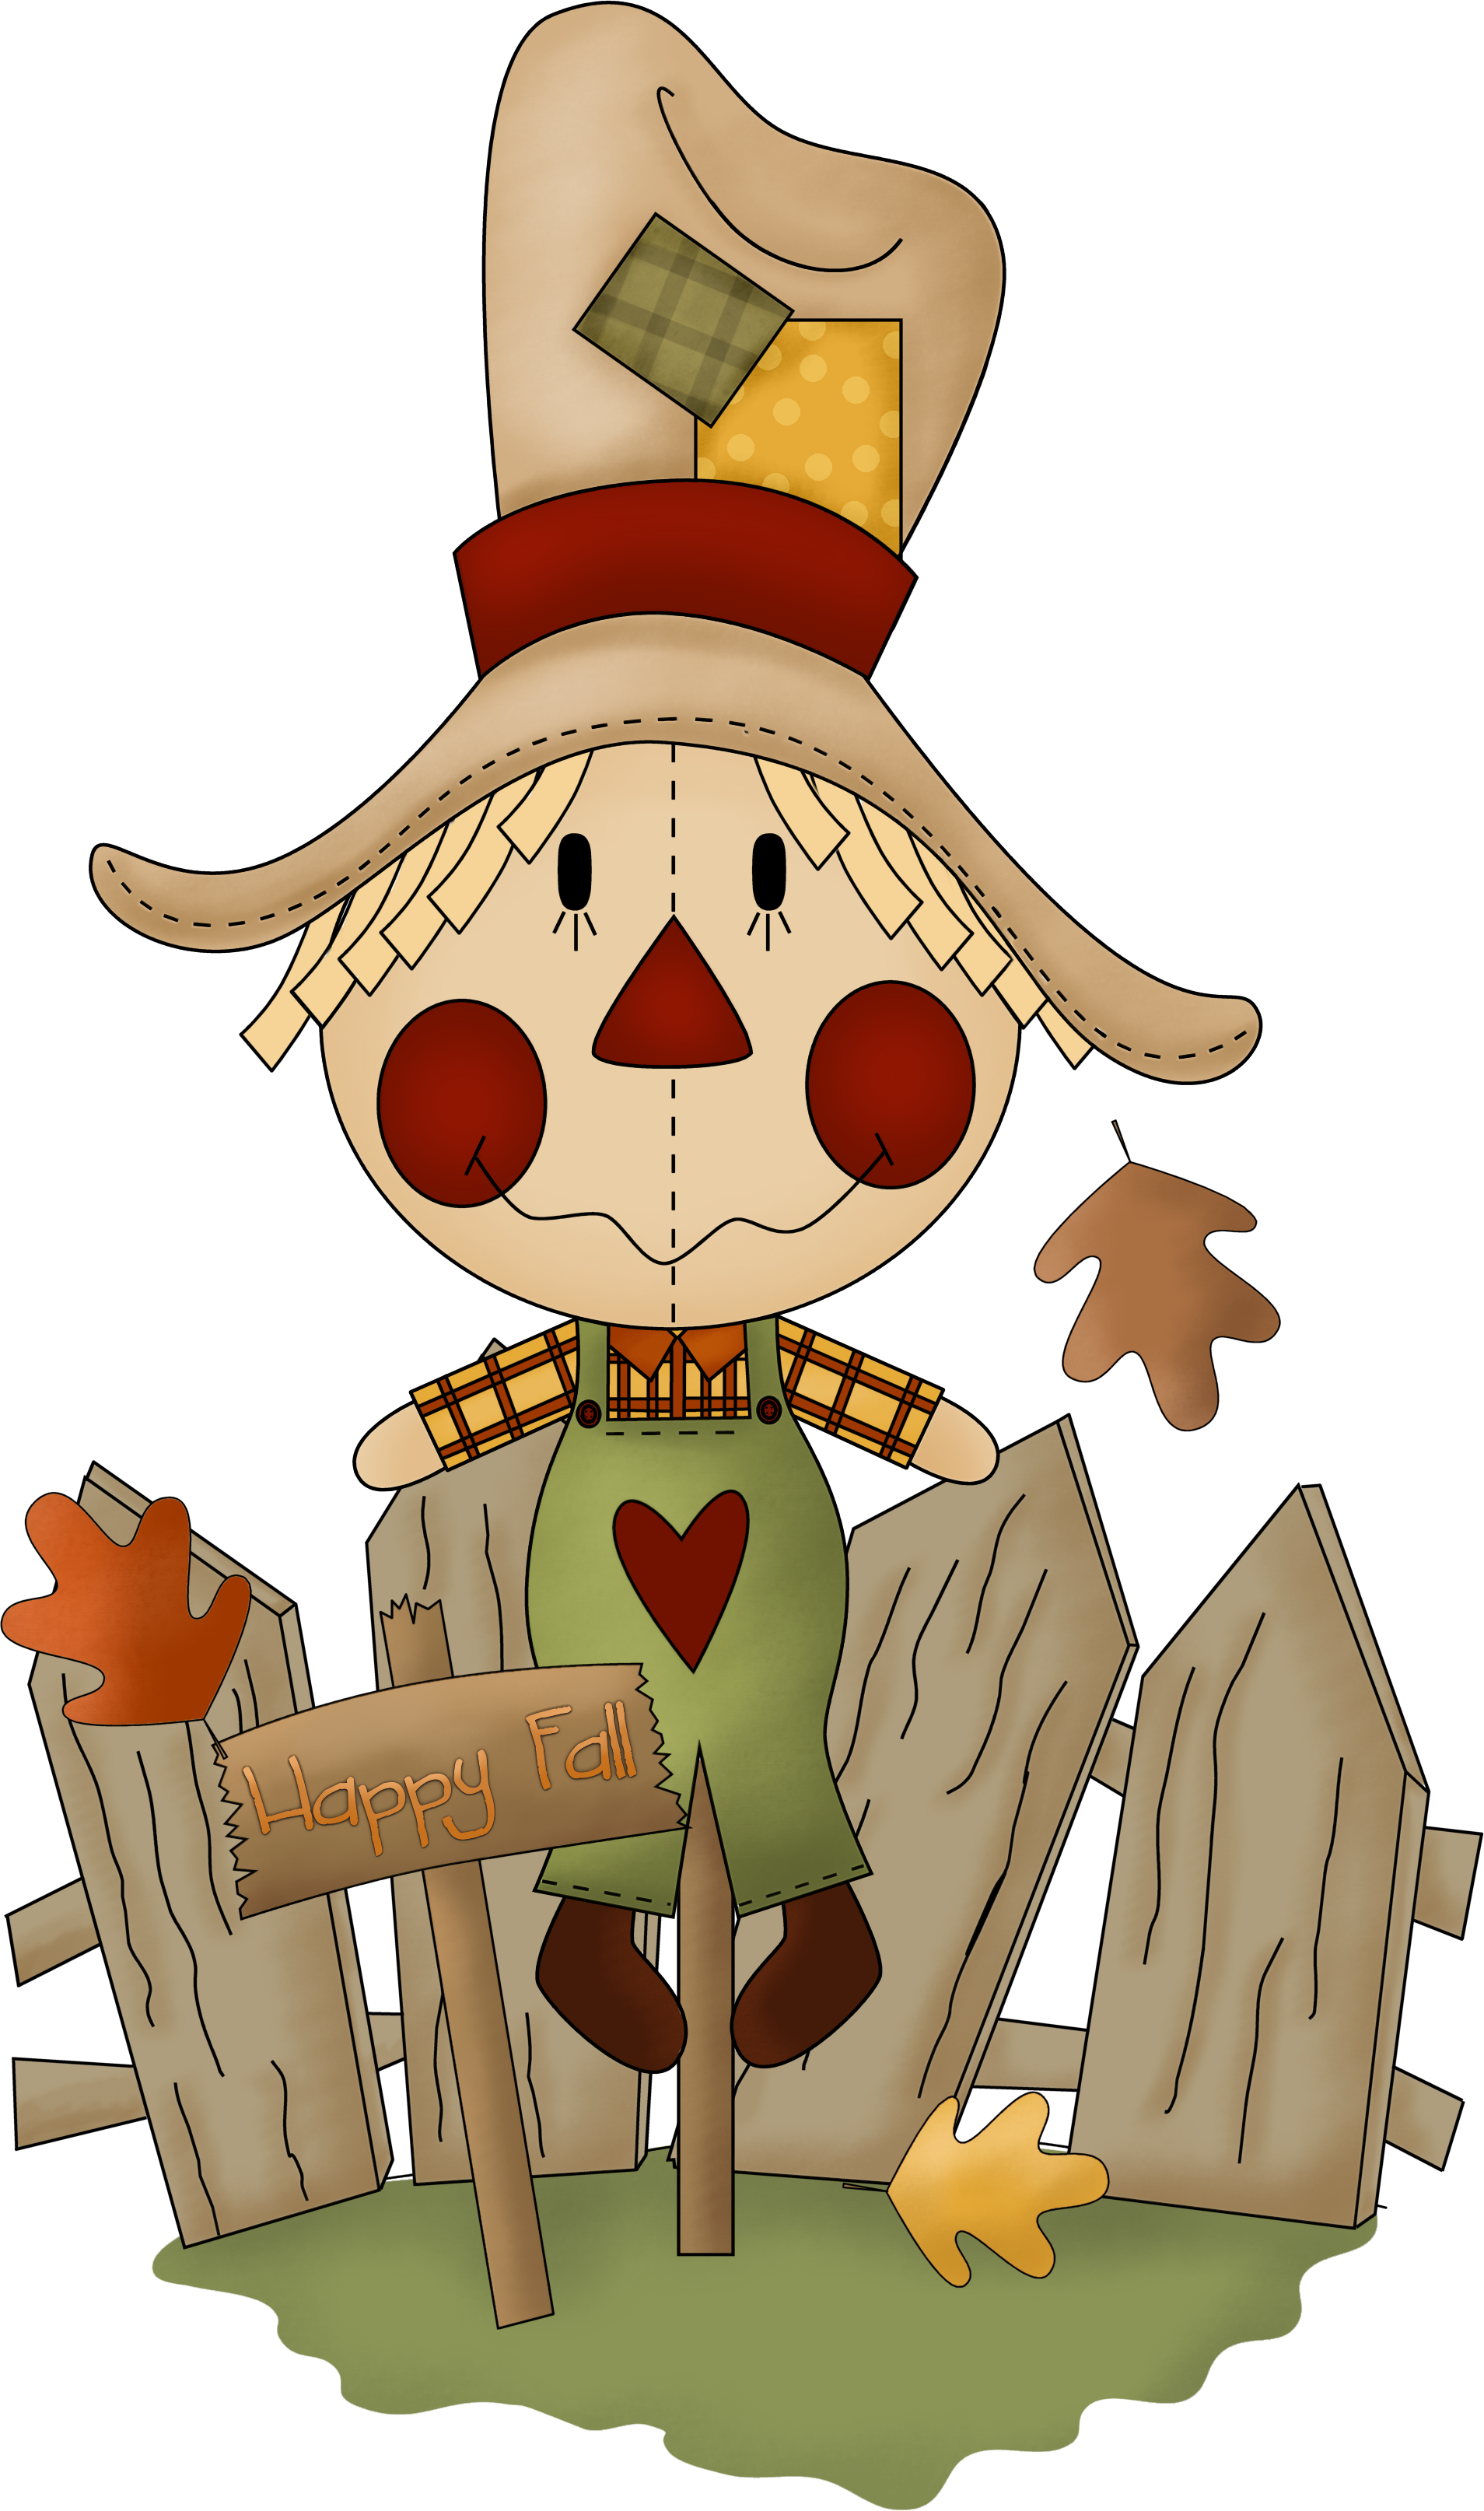 Quilting clipart quilt background. Scarecrow fall pinterest scarecrows